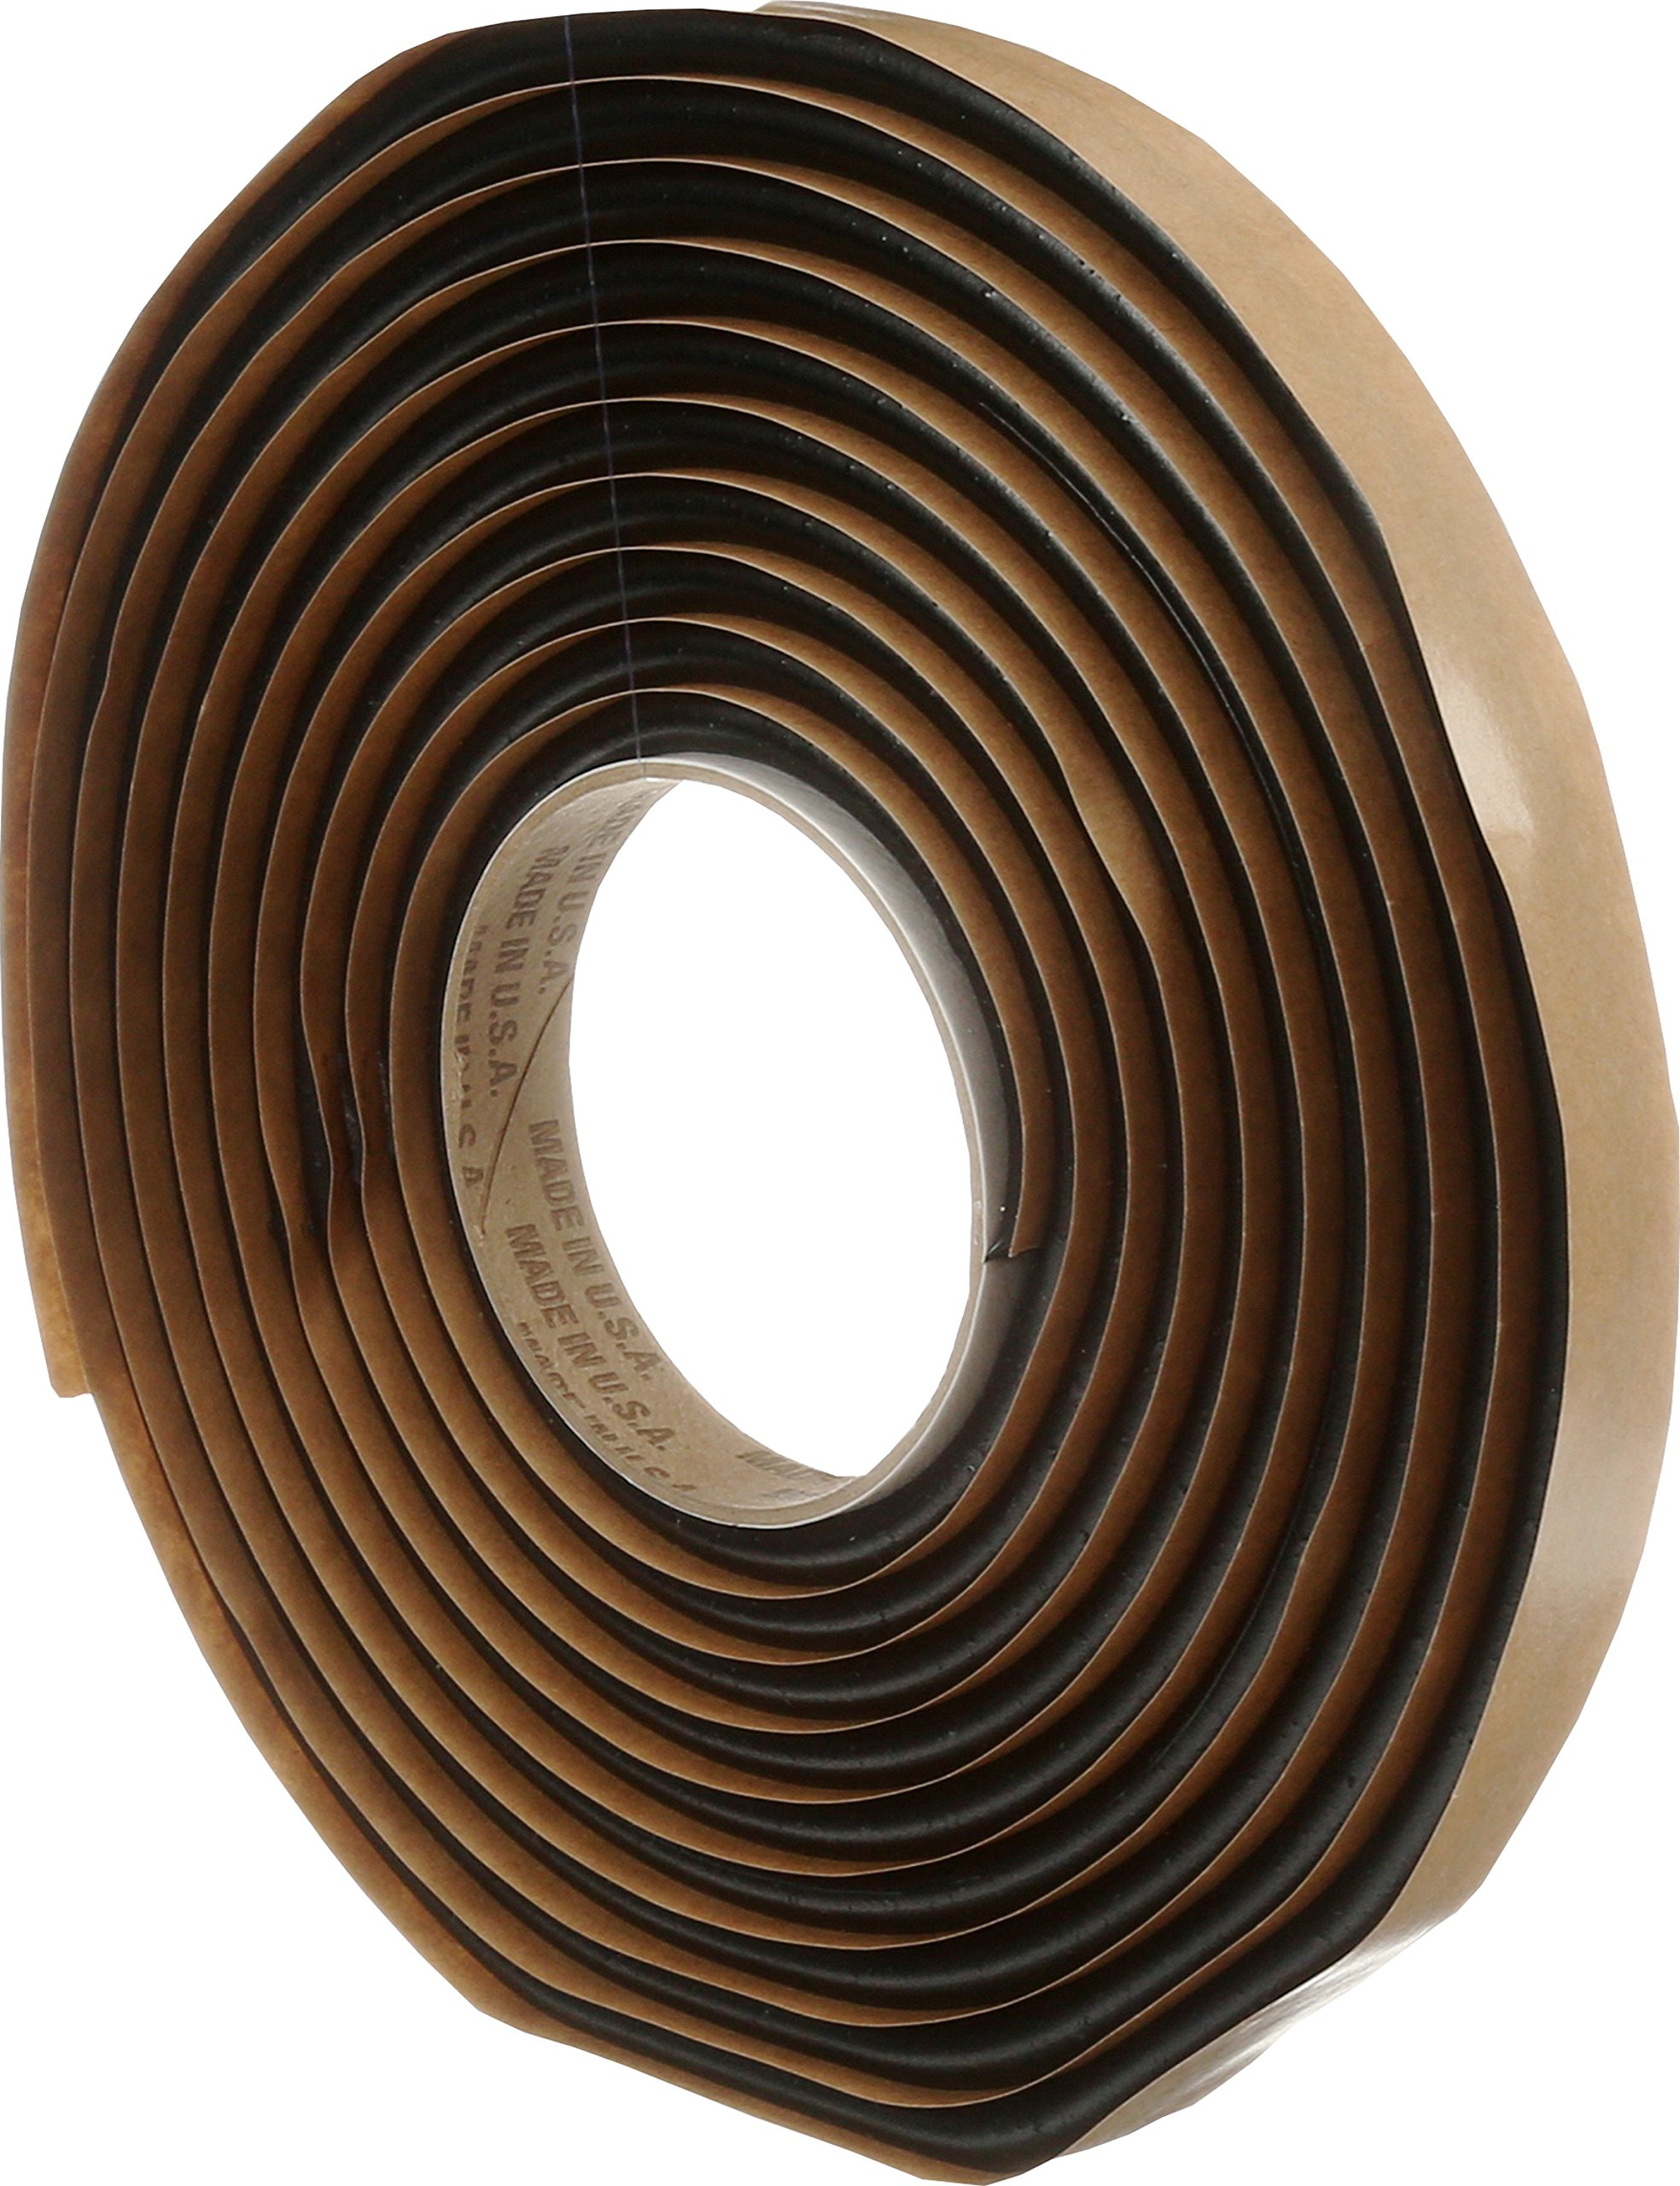 3M 08620 Window-Weld 1/4'' x 15' Round Ribbon Sealer Roll